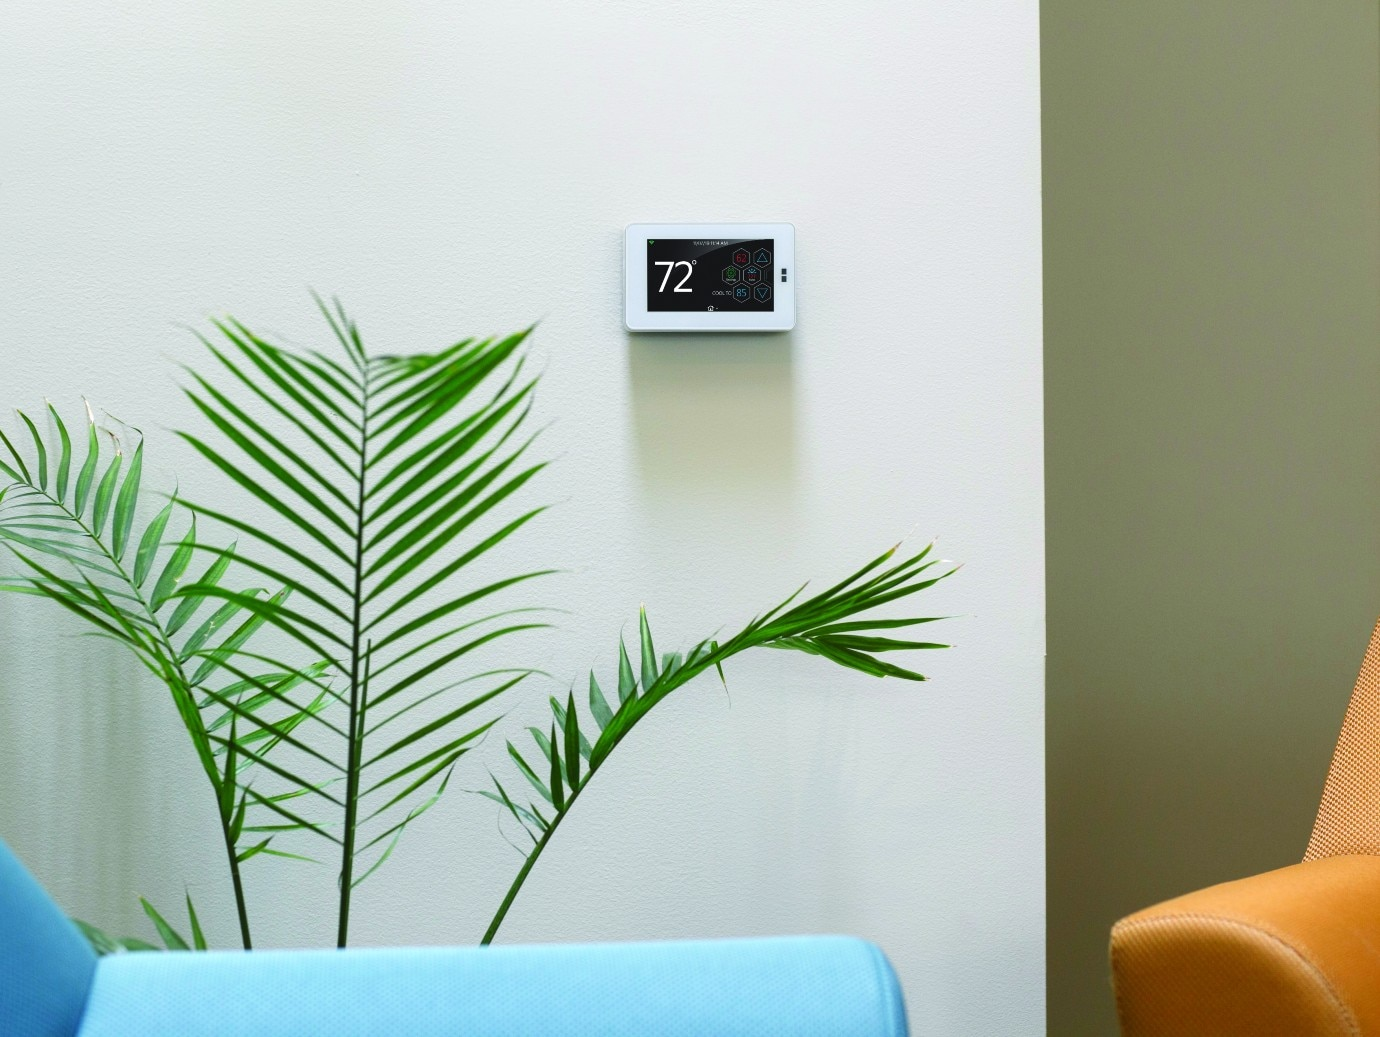 Cozy home uses a YORK Hx3 WiFi Touch Screen Thermostat for quick and easy temperature control from anywhere.